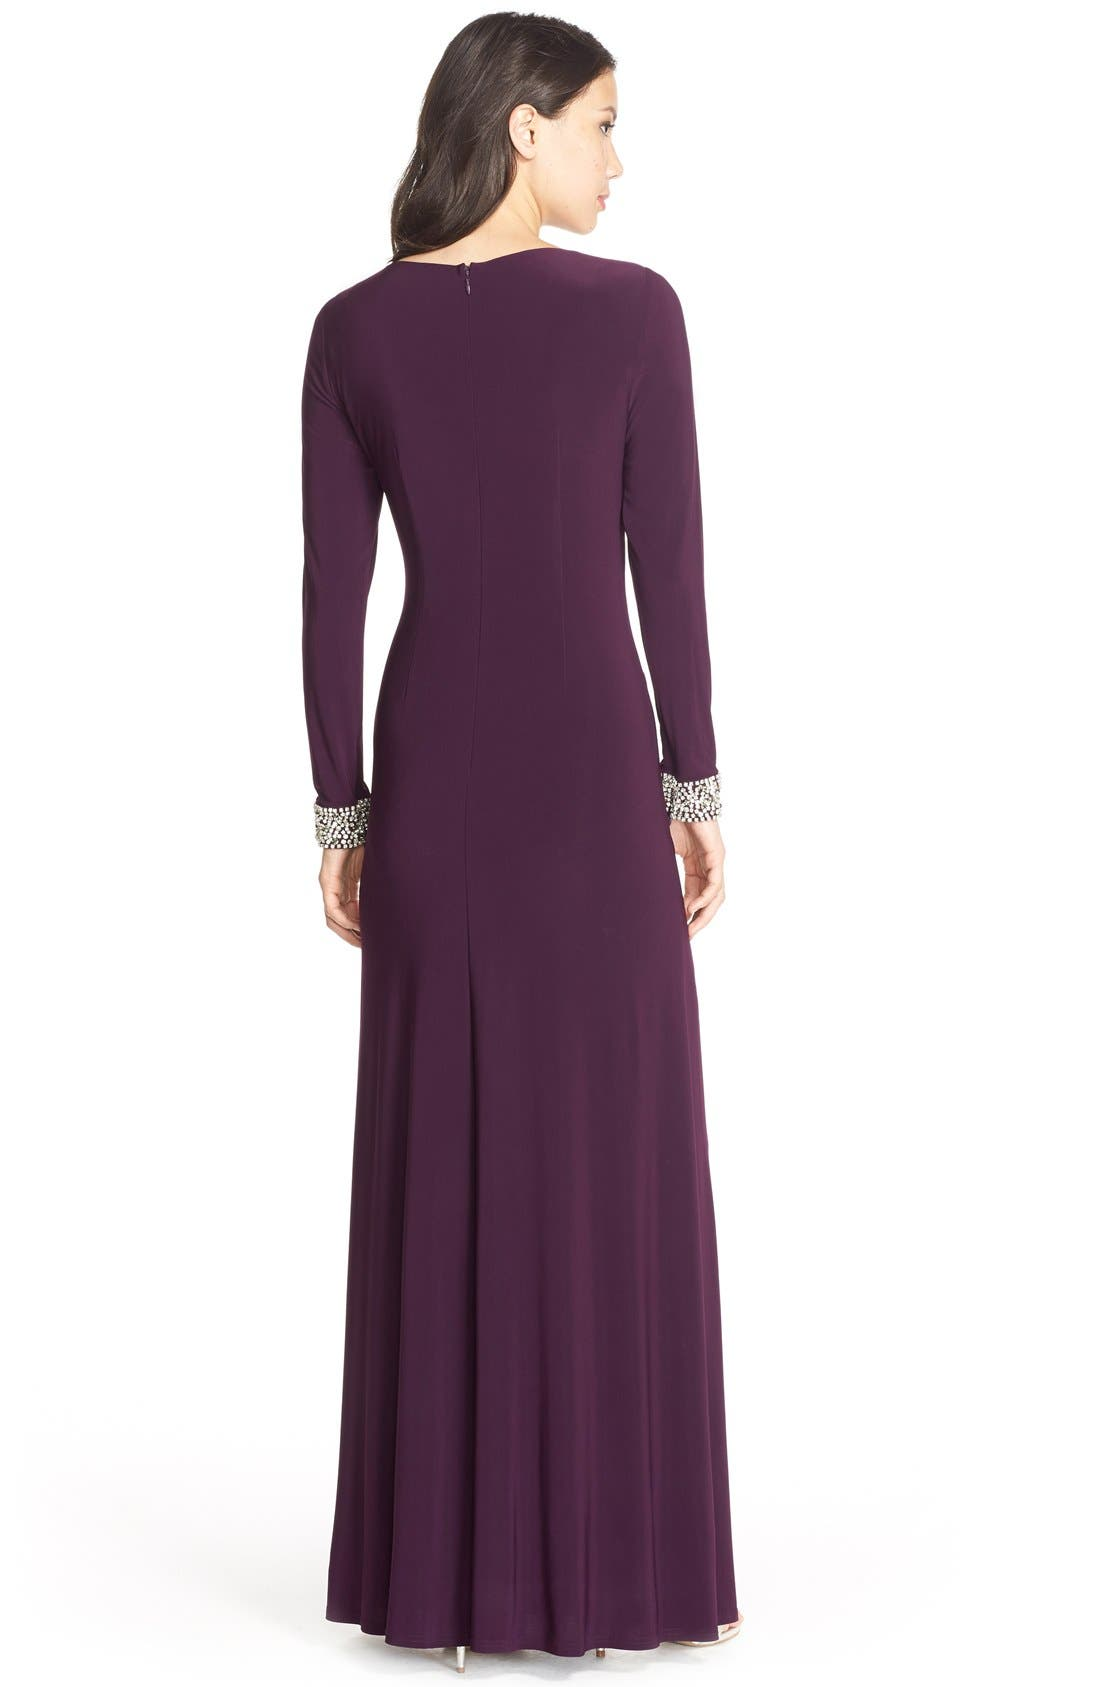 VINCE CAMUTO, Beaded Cuff Ruched Jersey Gown, Alternate thumbnail 8, color, 505